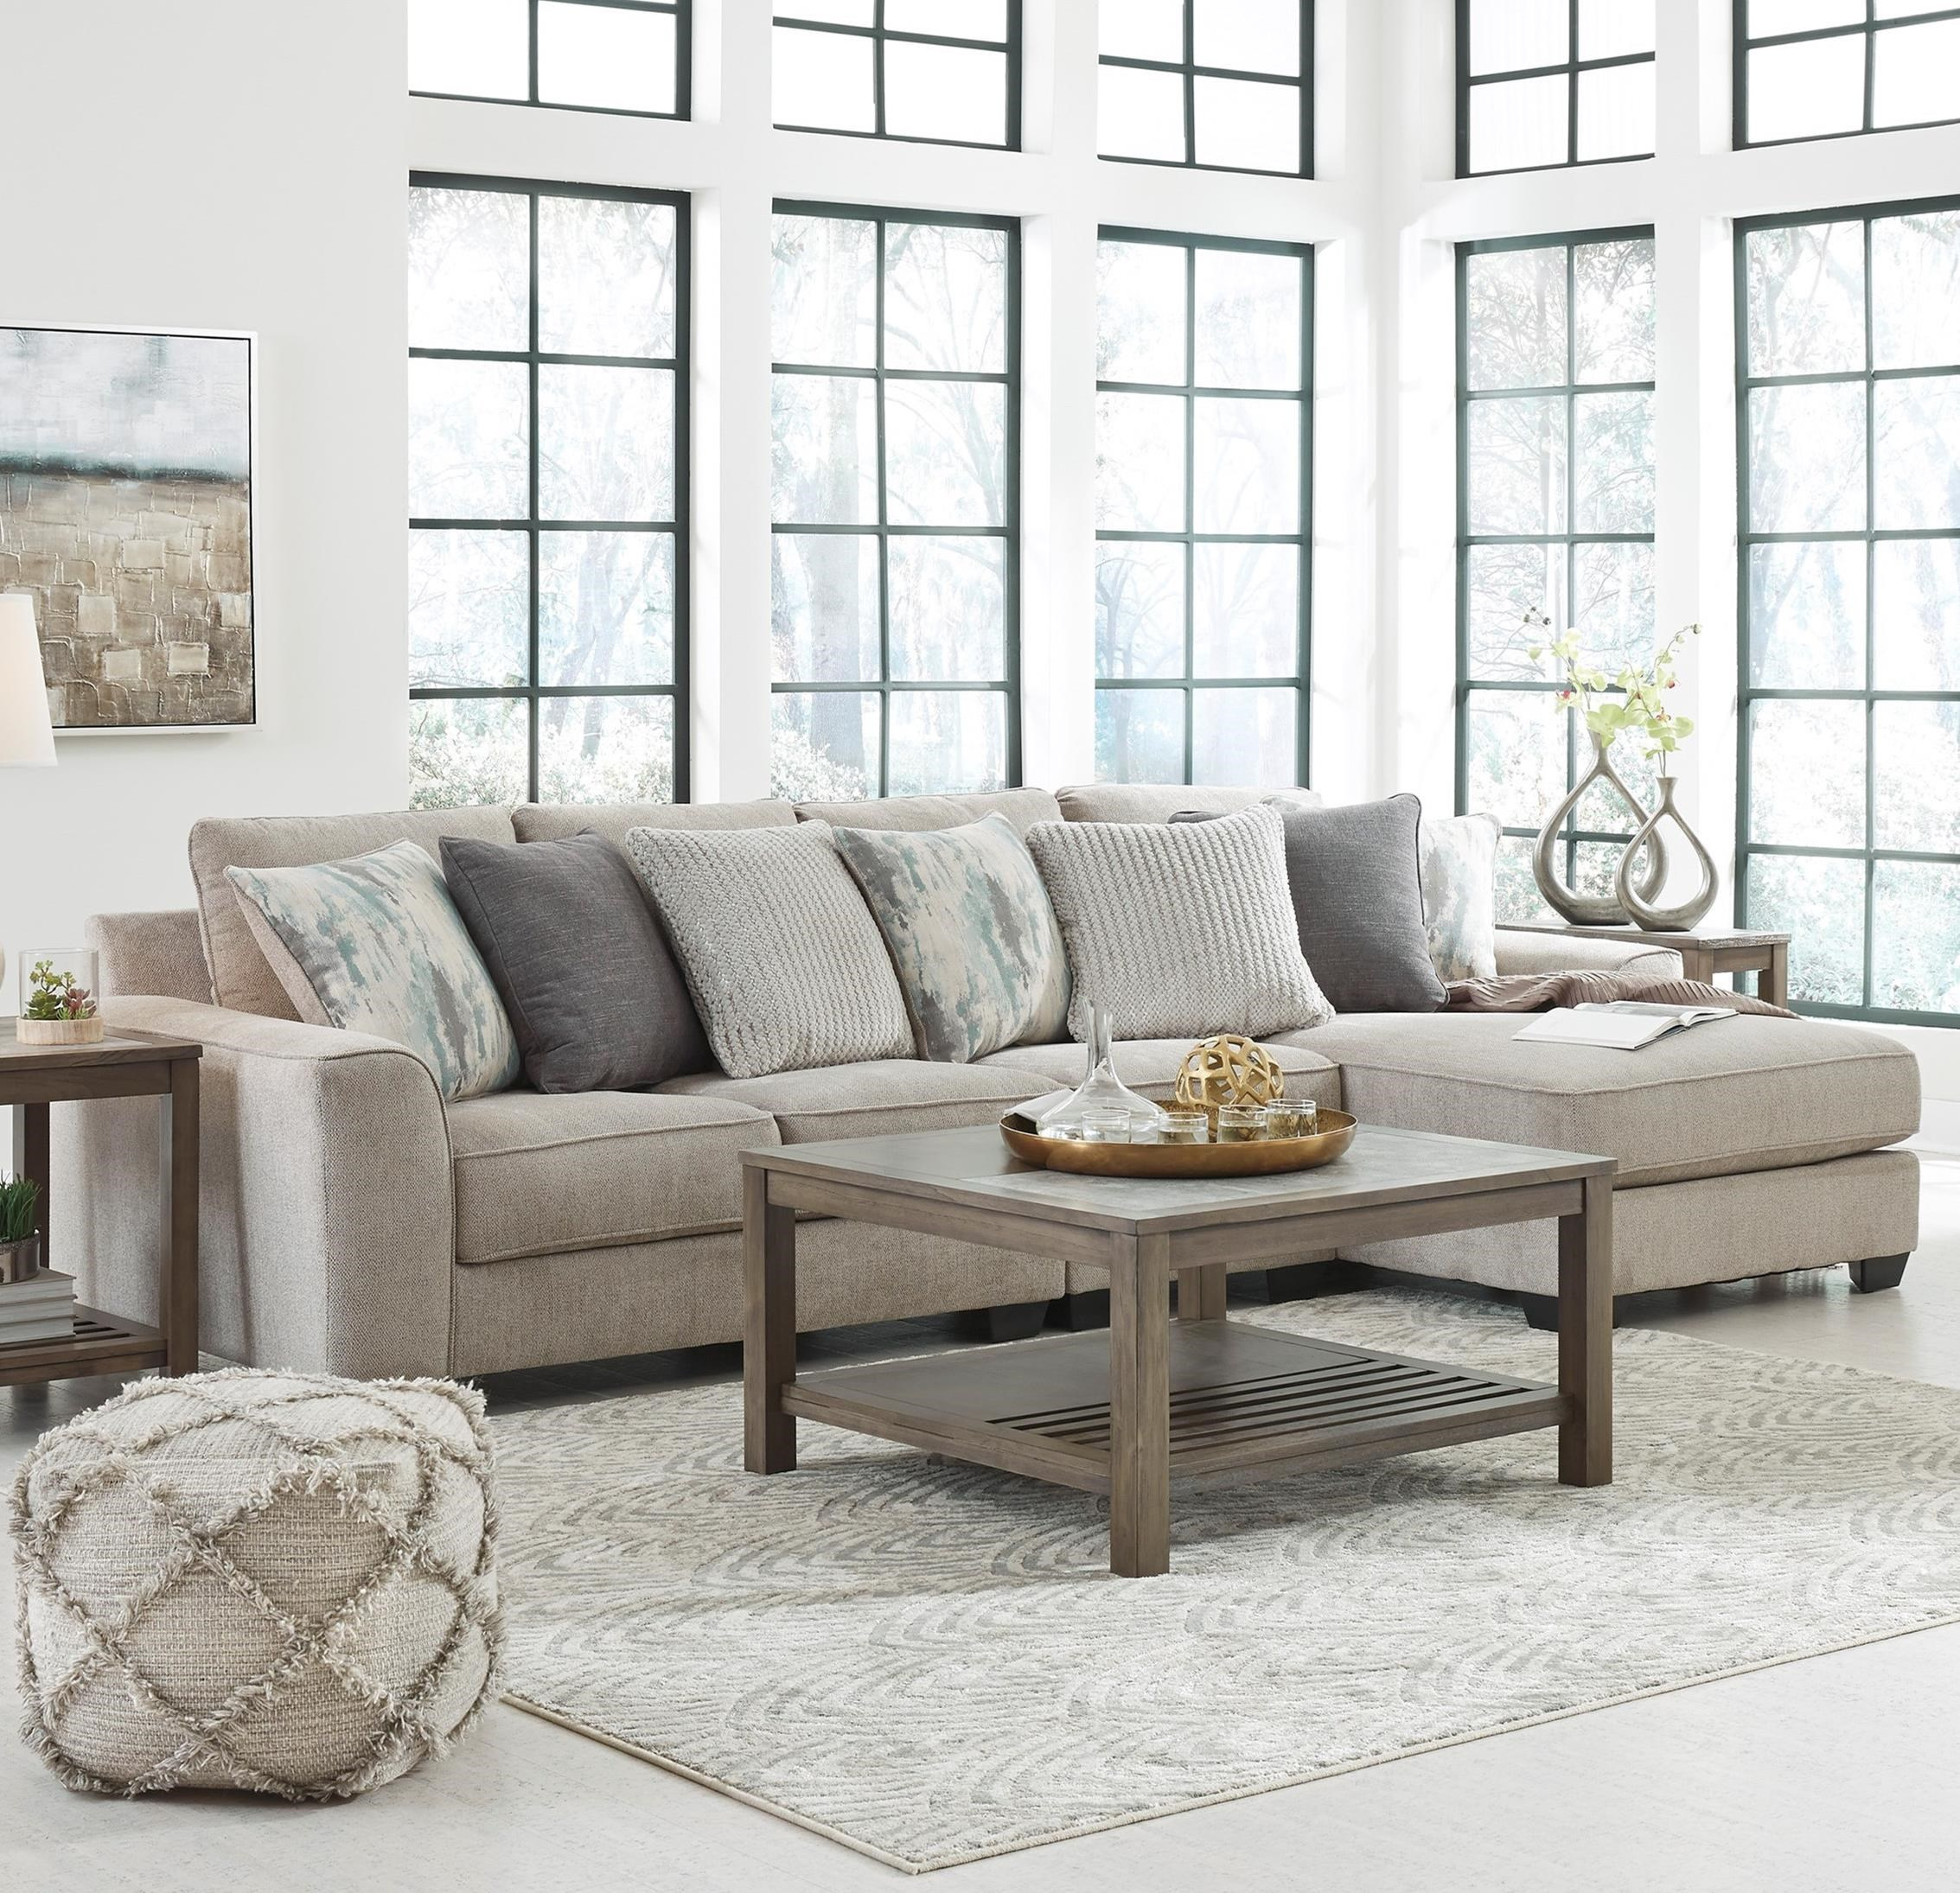 Ardsley 3-Piece Sectional with Right Chaise by Benchcraft at Simply Home by Lindy's